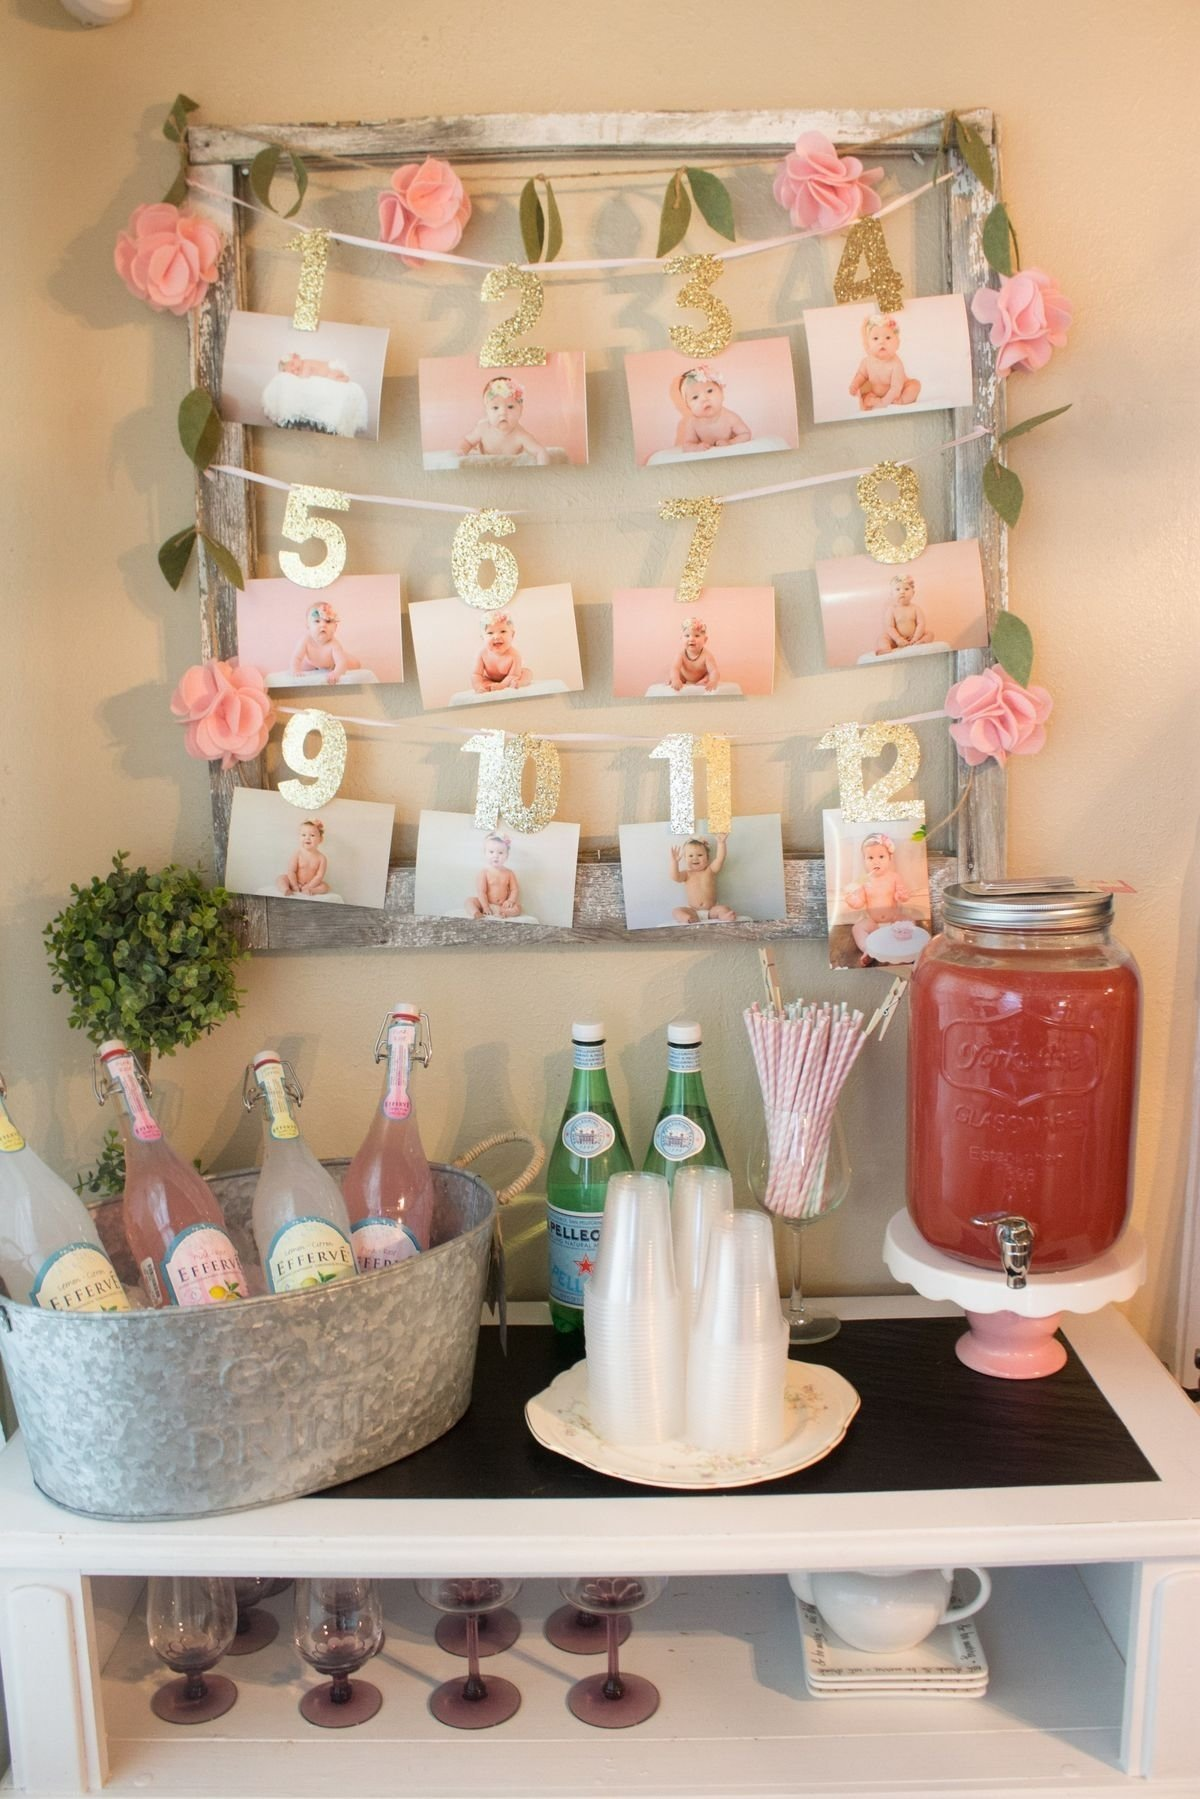 10 Best Ideas For A One Year Old Birthday Party themes birthdayone year old baby birthday party ideas as well as 1 2020